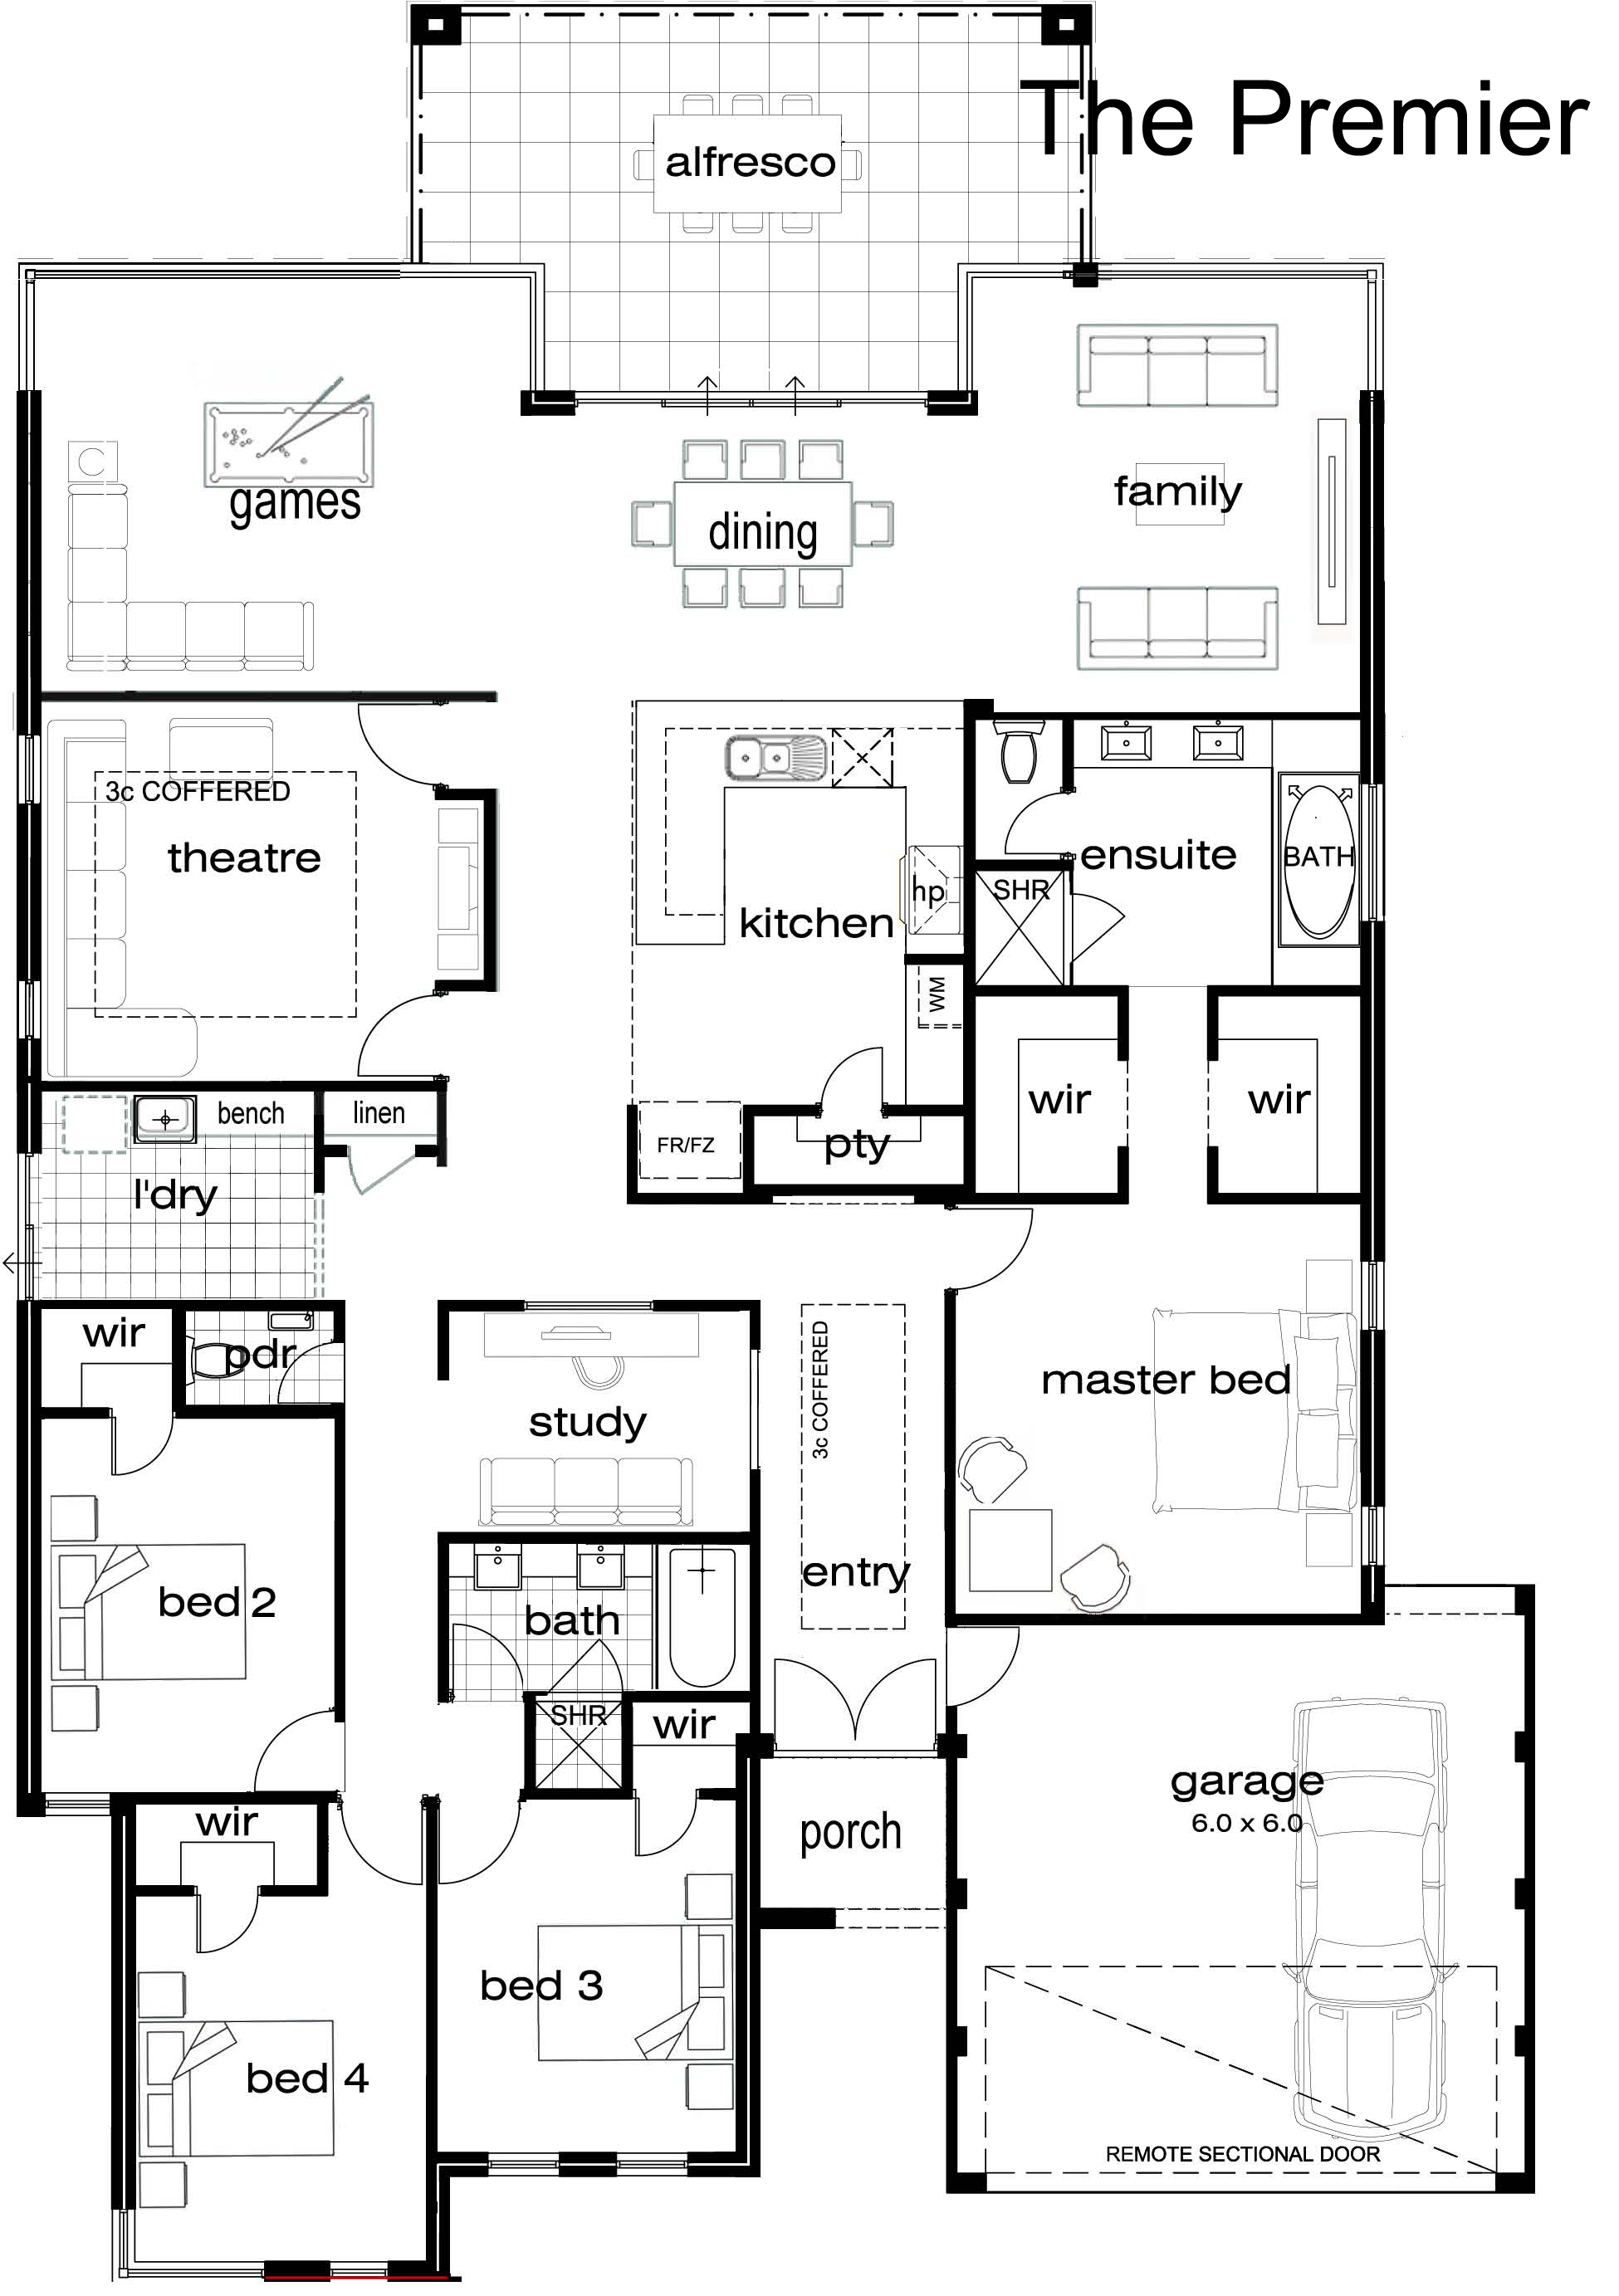 5 Bedroom Single Story House Plans Bedroom At Real Estate Single